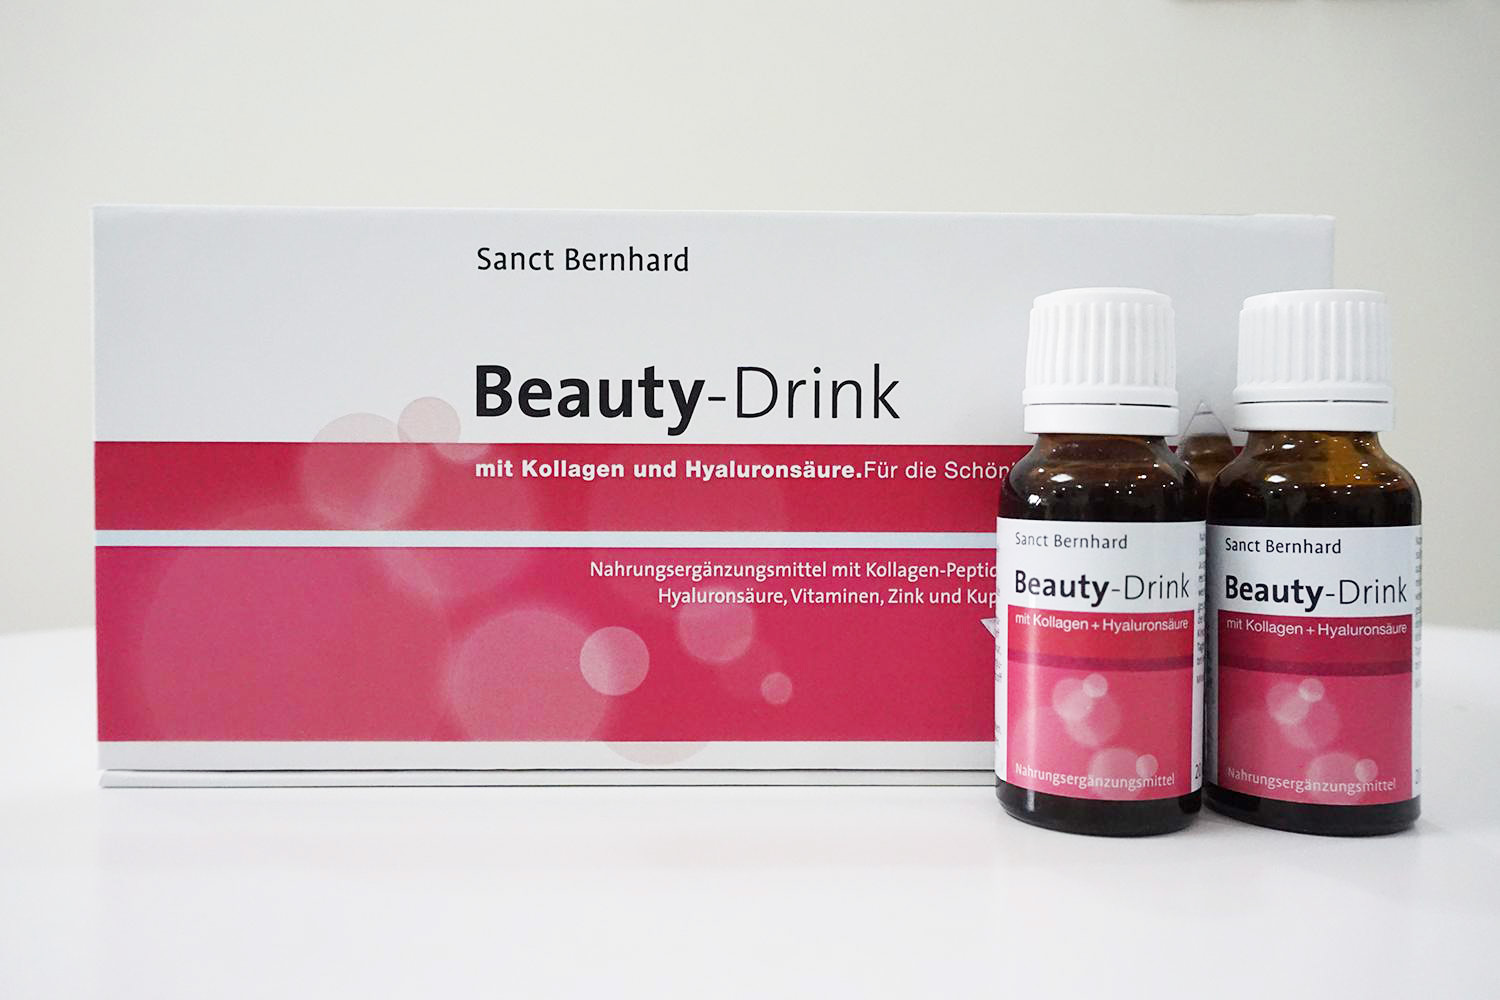 Collagen Beauty Drink chứa đựng 100% Collagen Peptide